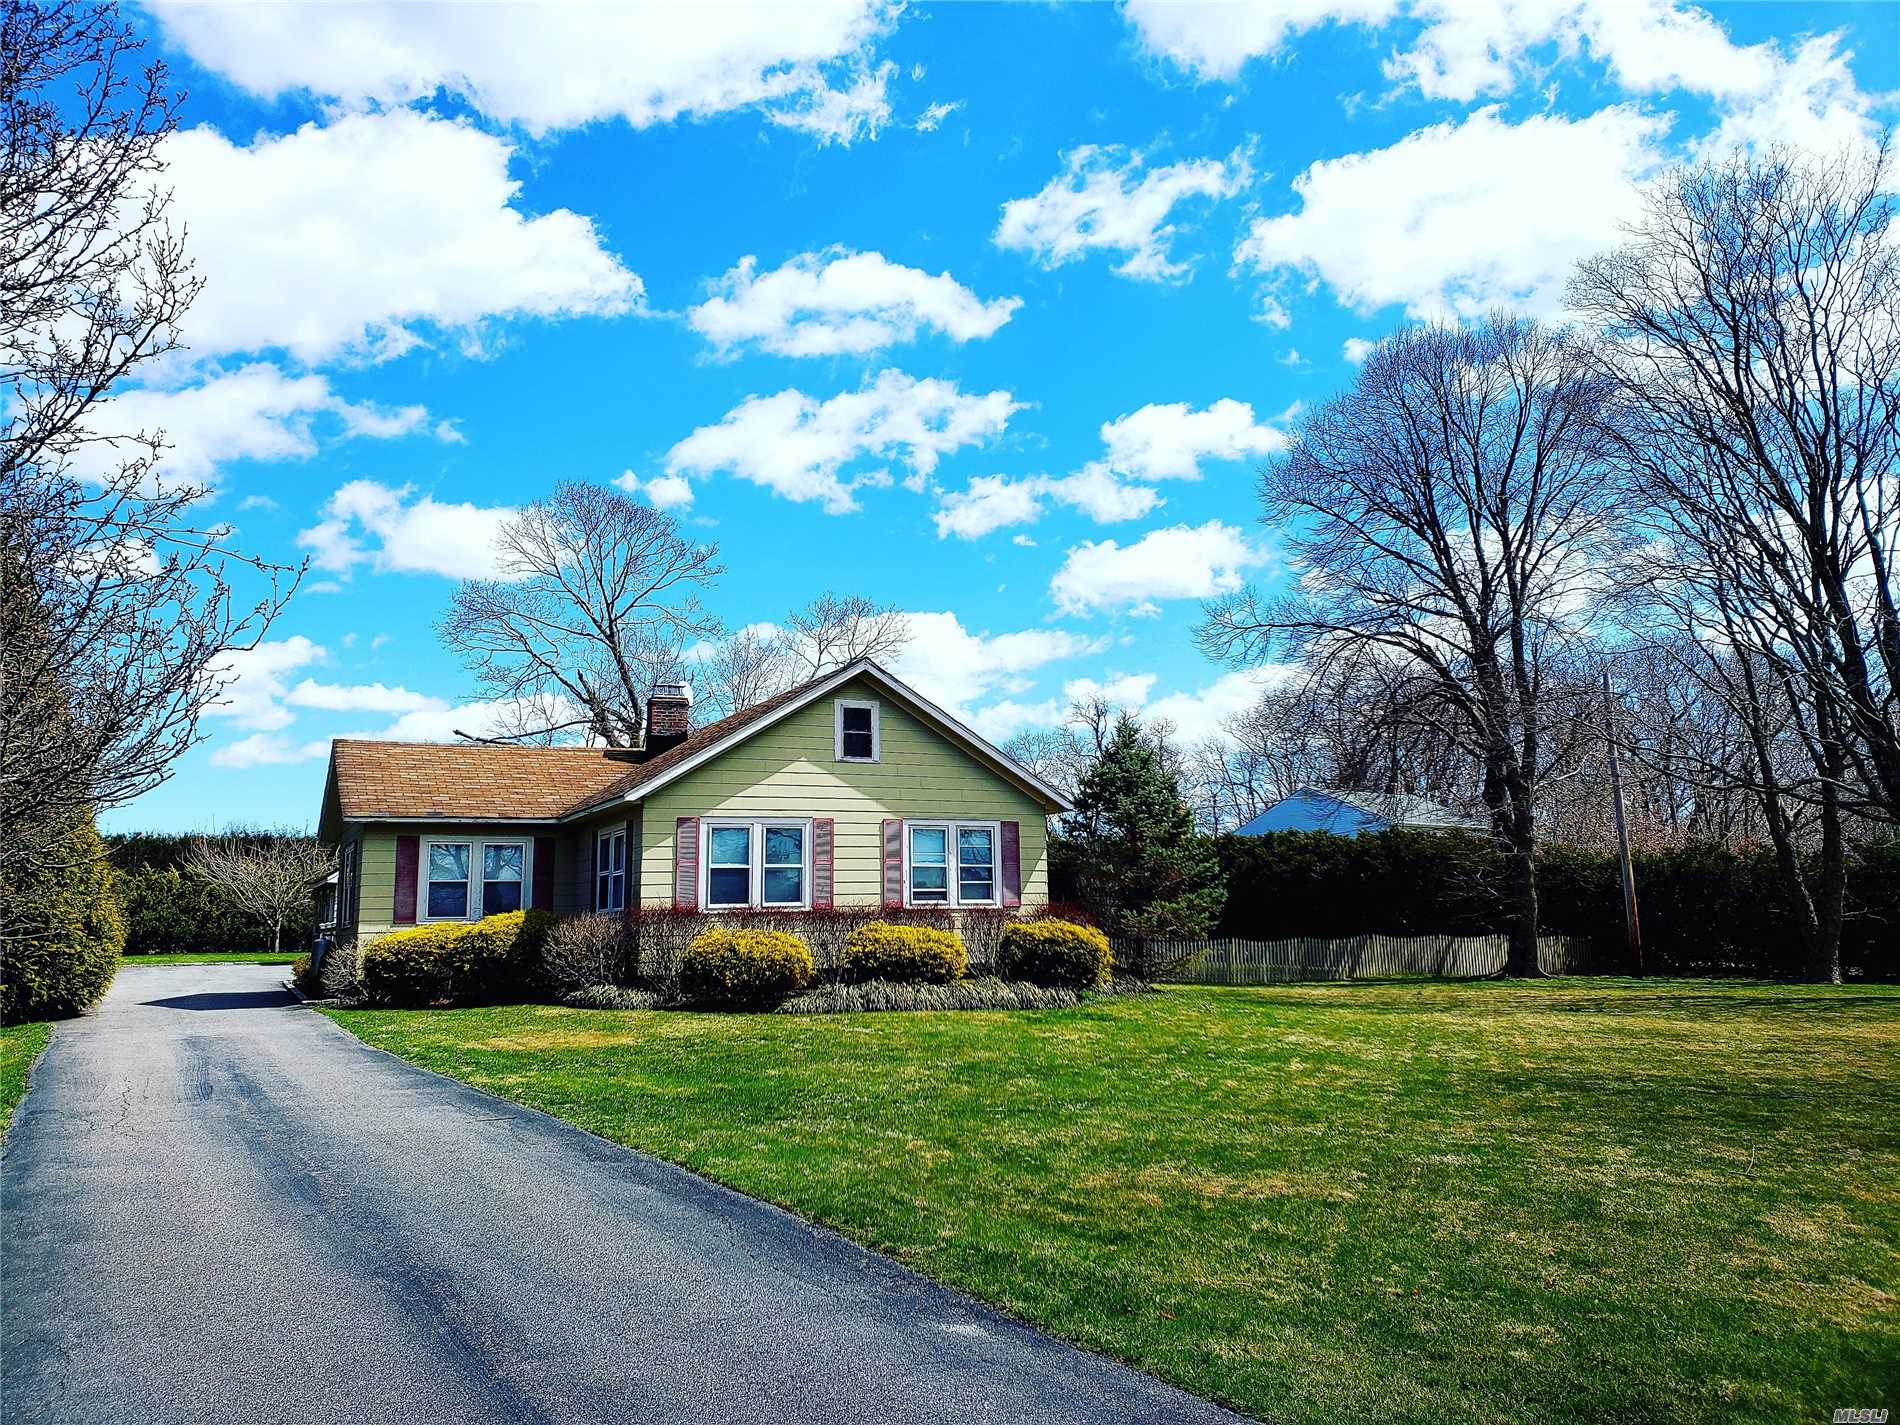 HOW SWEET IT IS! This Three Bedroom One Bath Ranch With A Stand Up Attic Is Situated On A Shy Acre Property Offering Many Ideas To Expand.The Low Taxes Makes This A Very Affordable Home With A Heated Two Car Detached Garage For Those That Have a Home Based Business. Hardwood Flooring Throughout, Full Basement, Central Air, Central Vac, And A Cozy Living Room With A Fireplace. This Sweet Ranch Style Home Is Set back From The Street With Plenty Of Privacy. Call Today Before Its Gone!